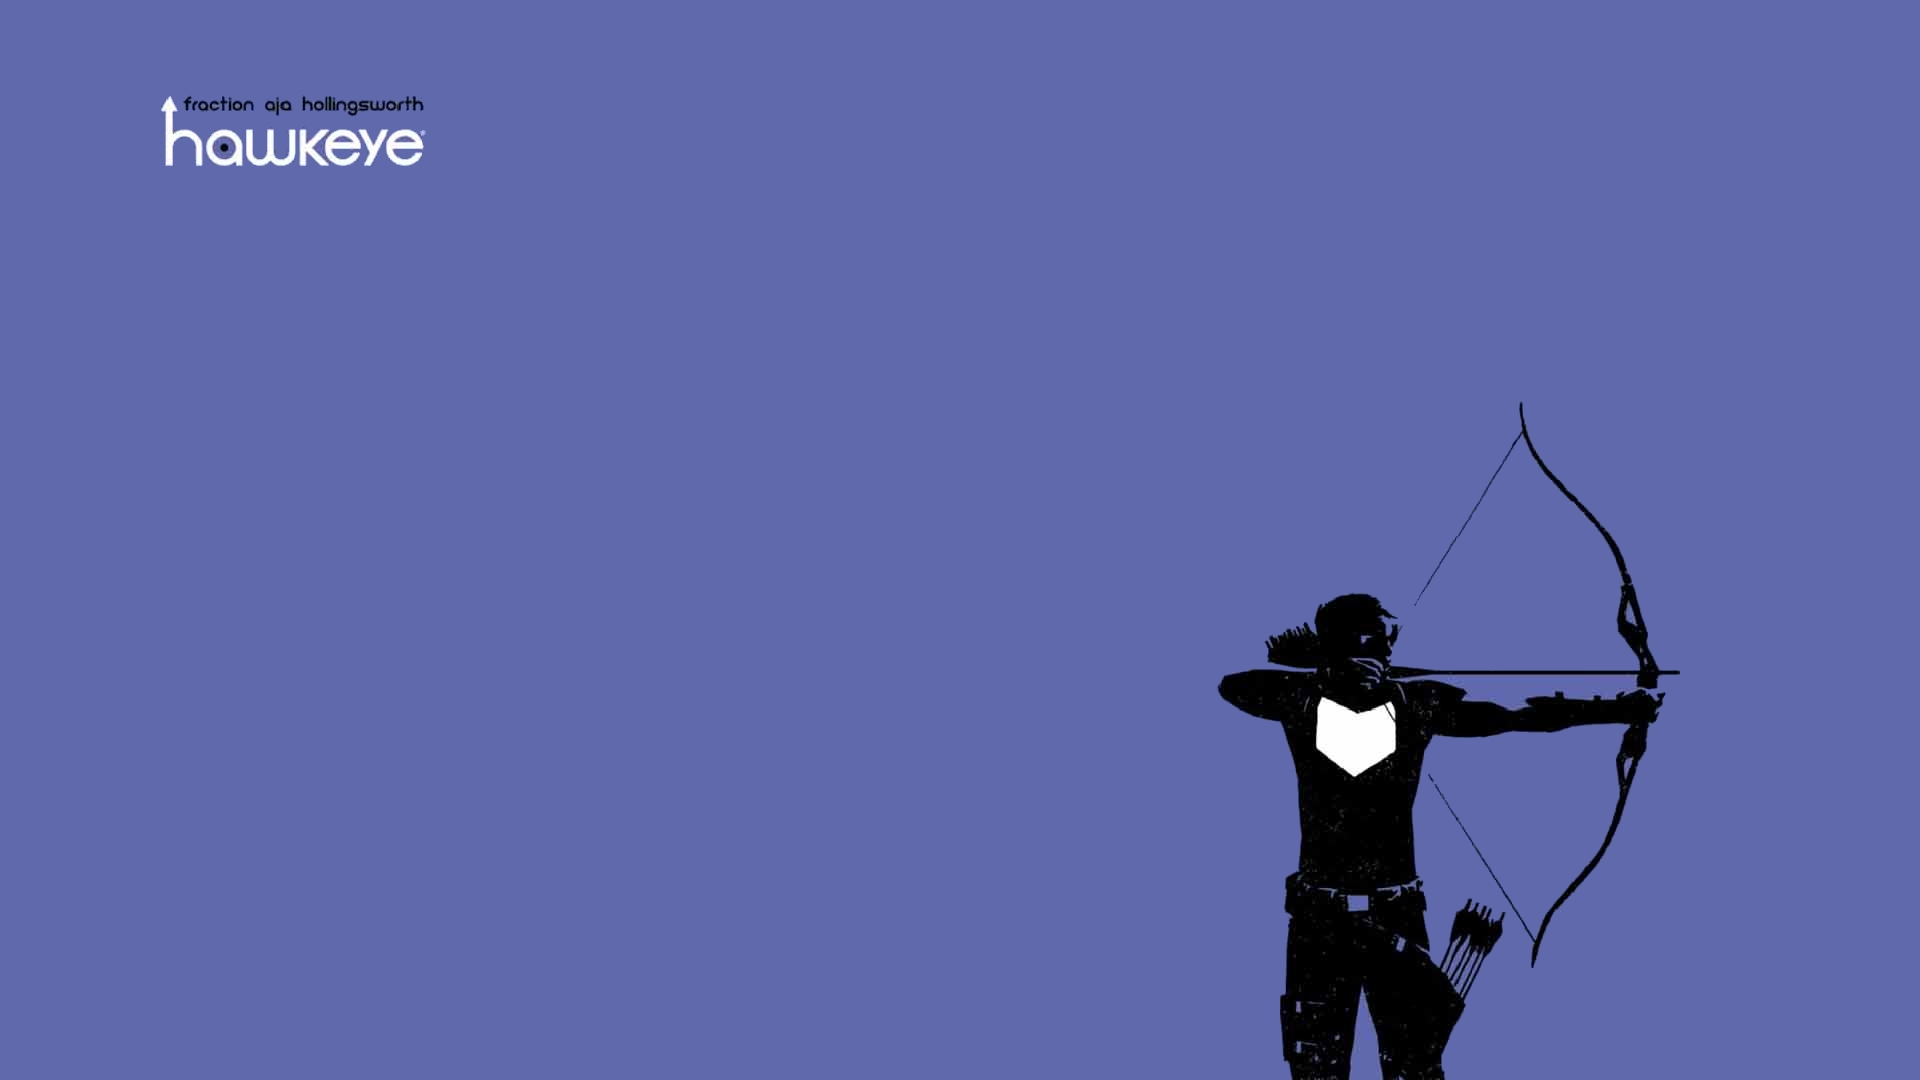 hawkeye wallpapers page - photo #3